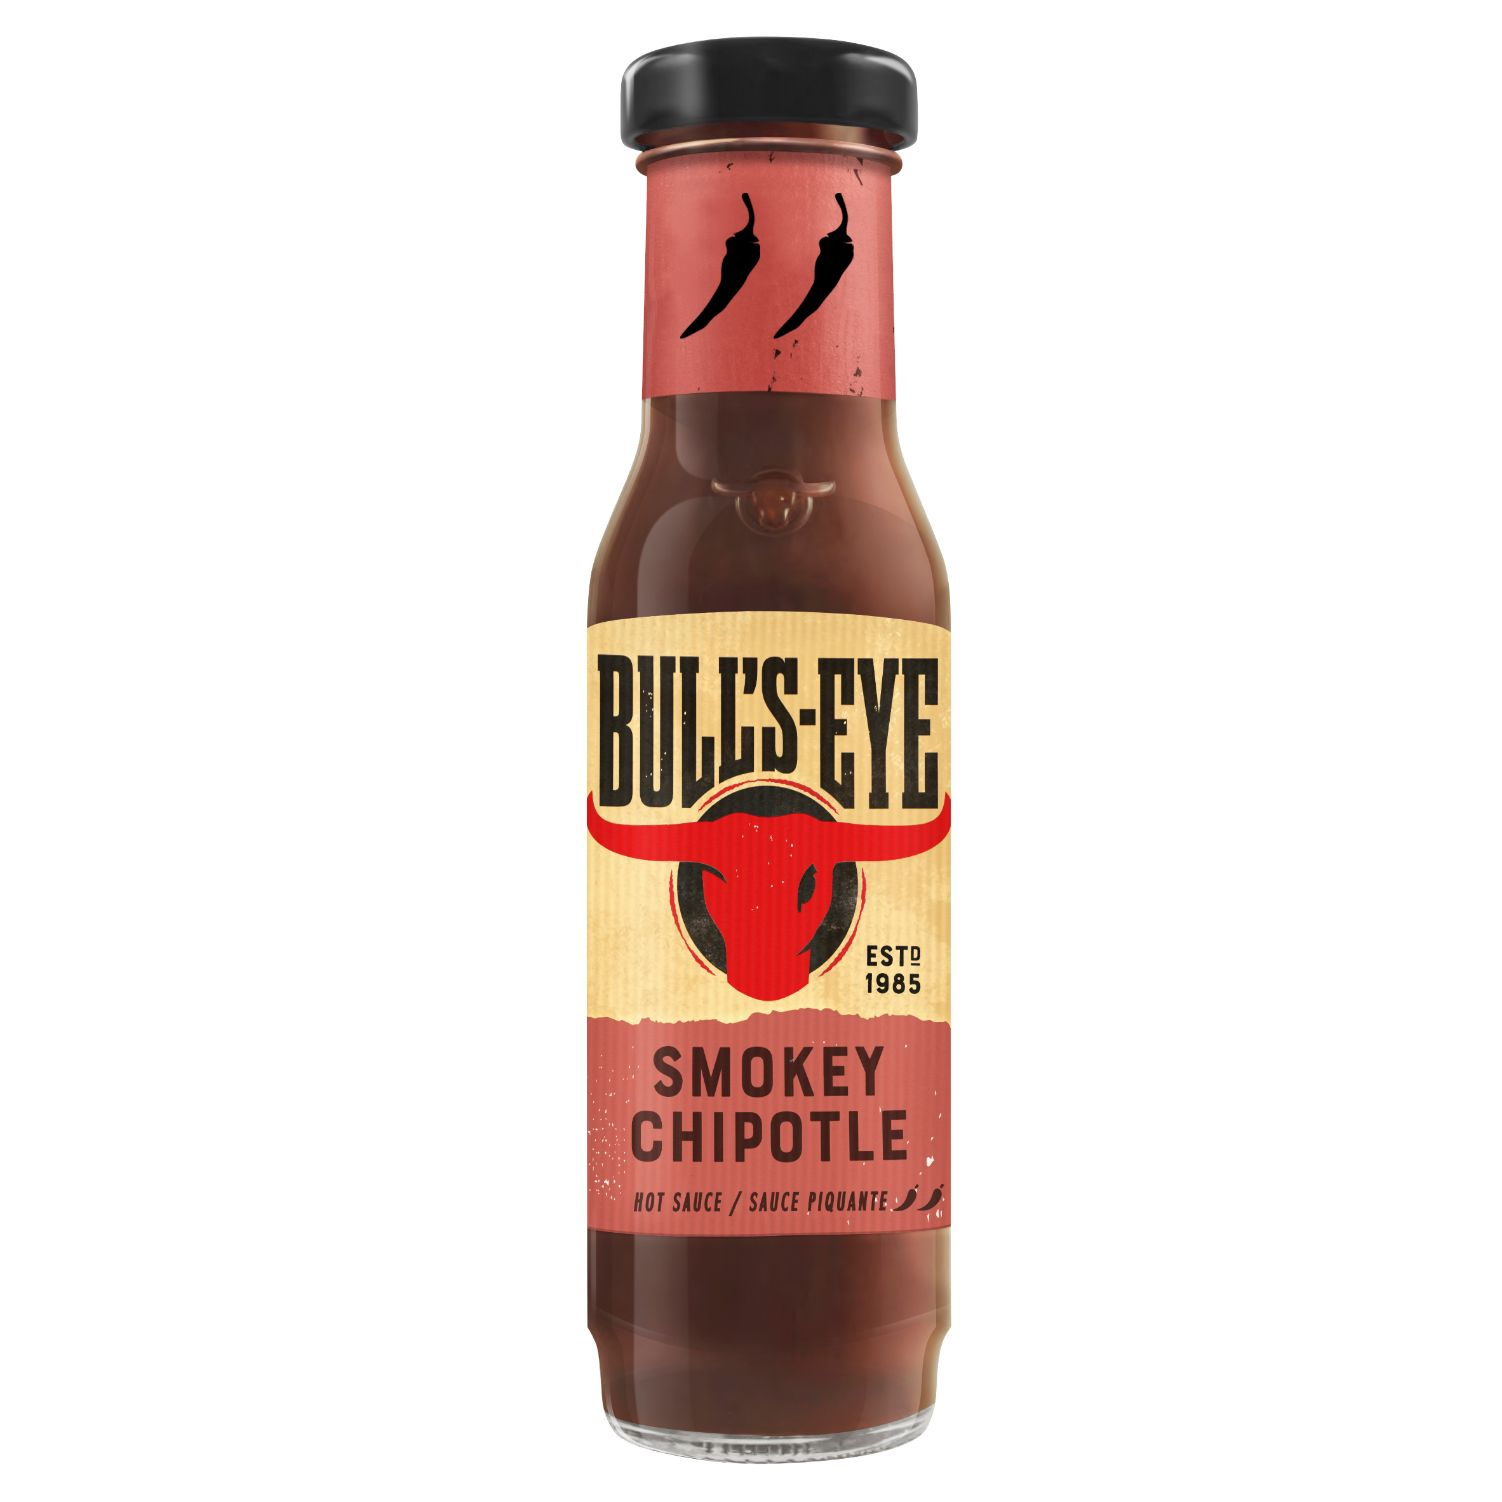 Bull's Eye Smokey chipotle 265g image